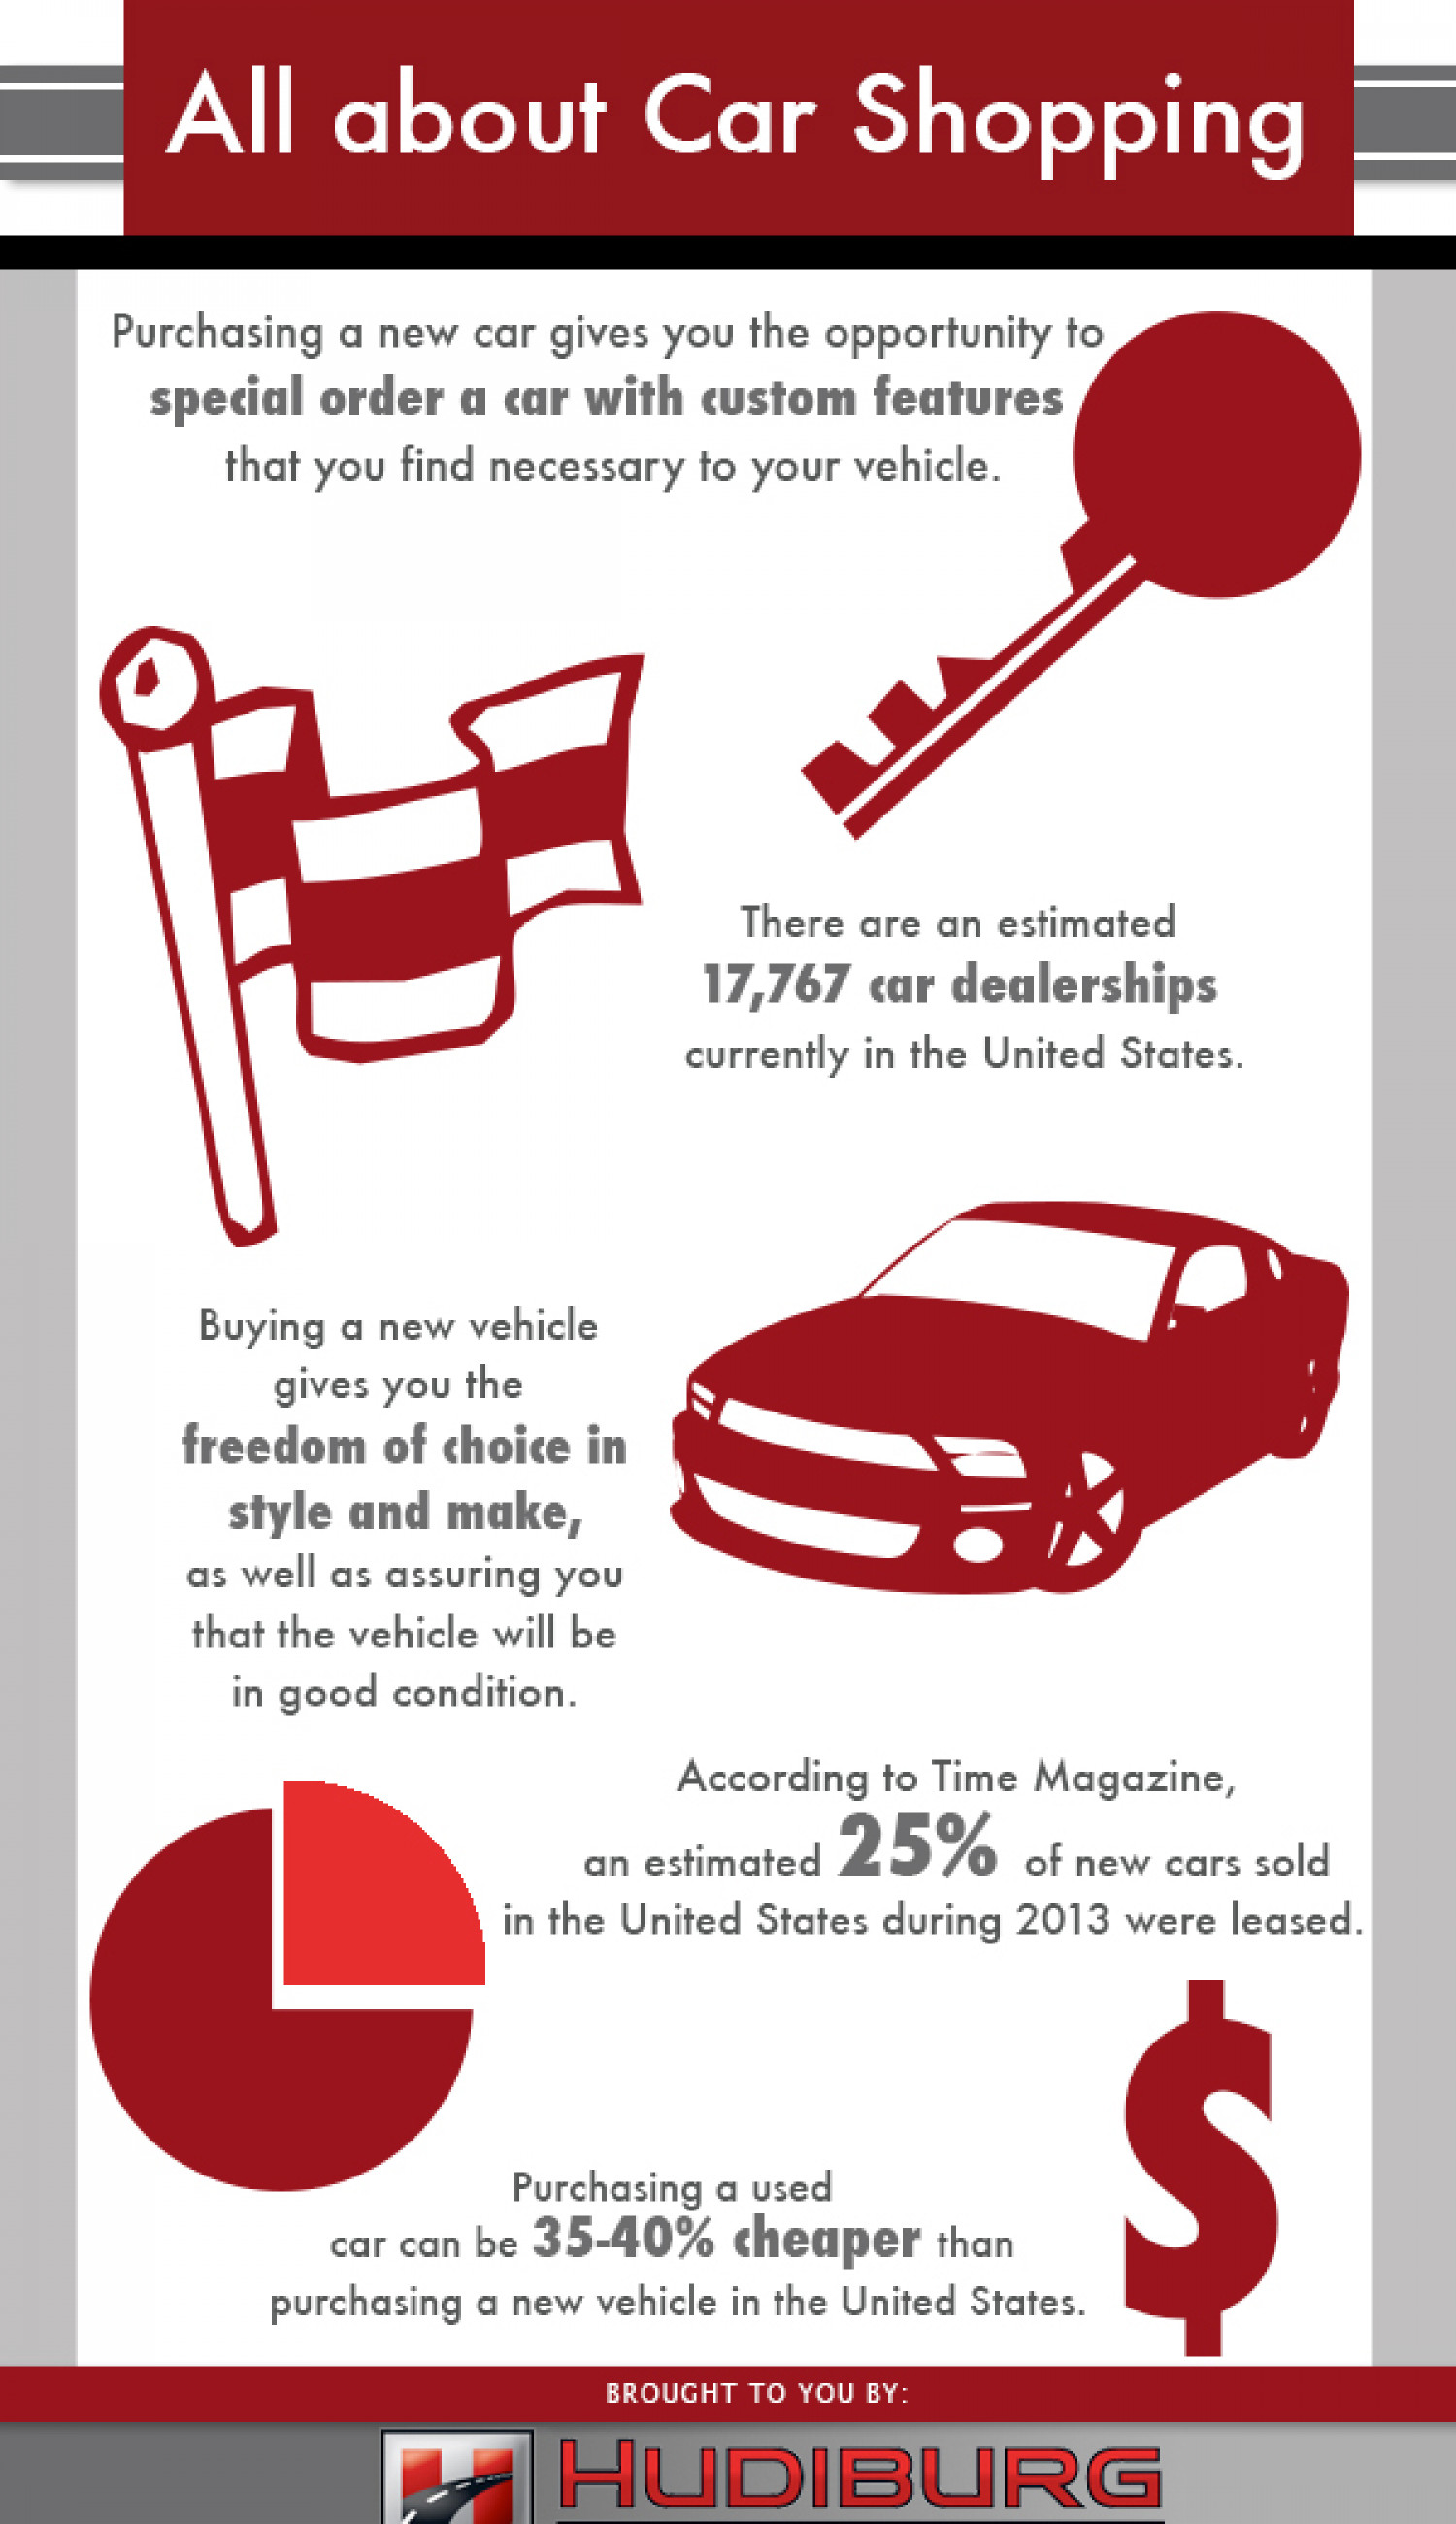 All About Car Shopping Infographic